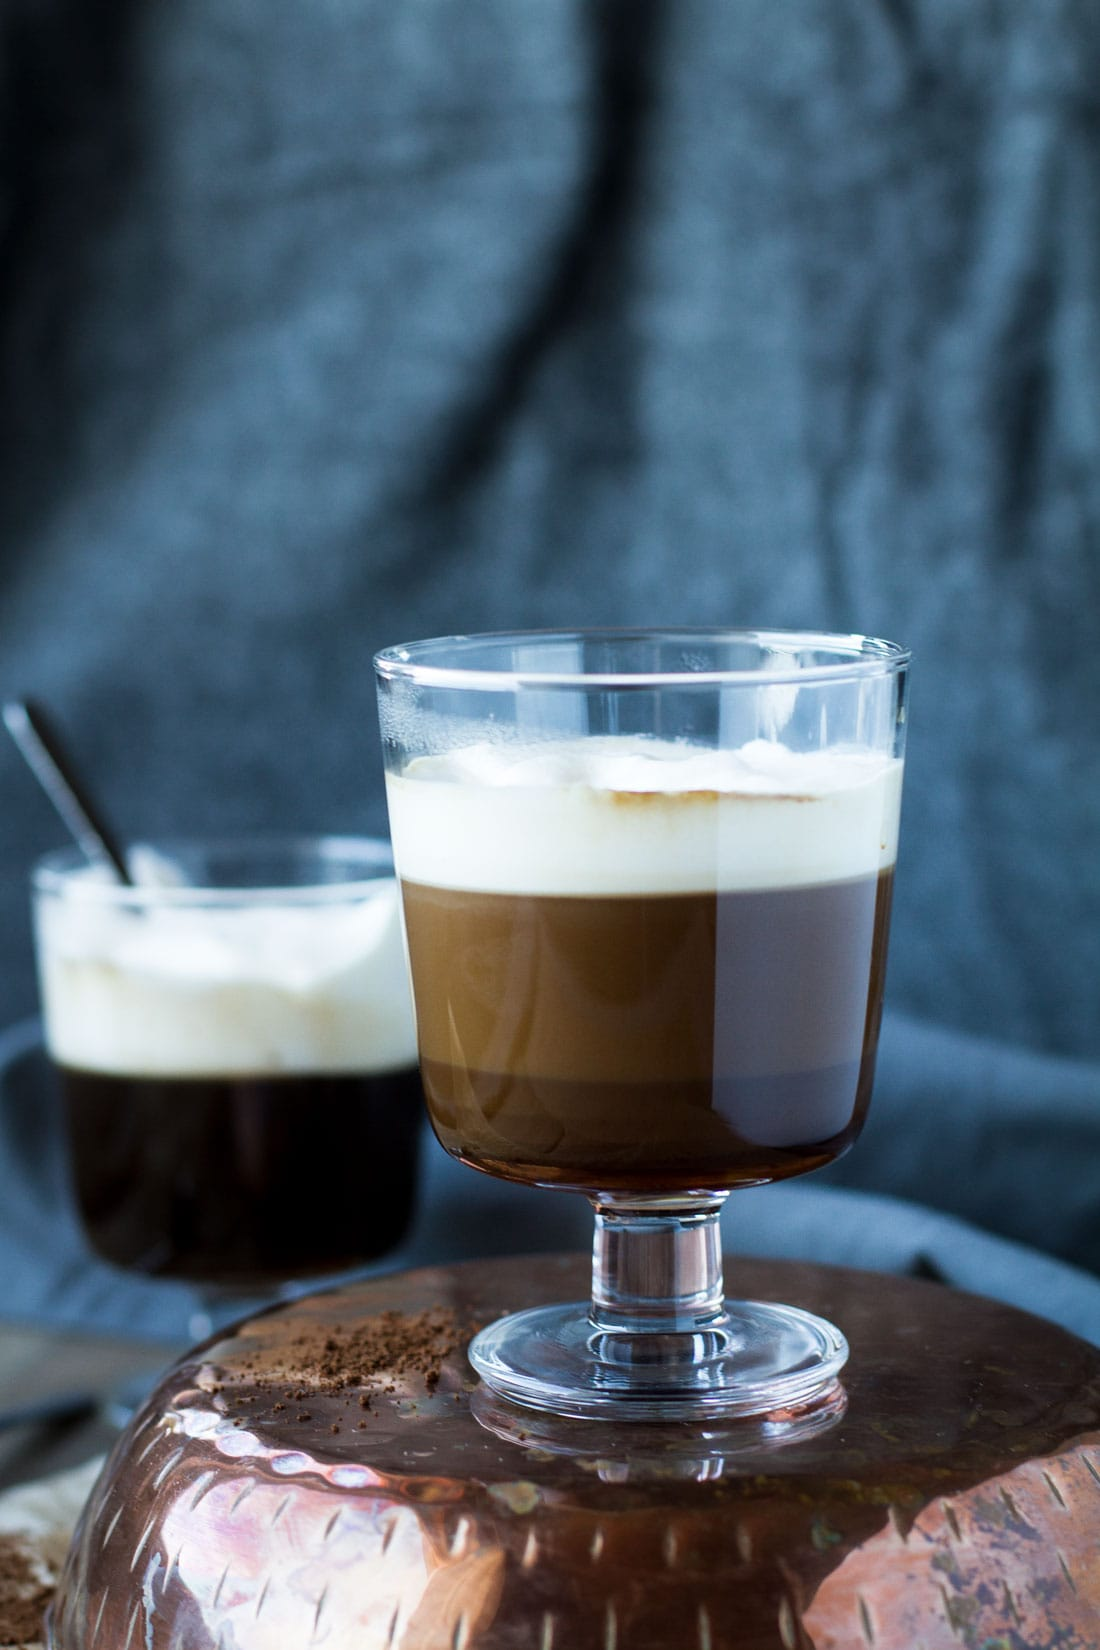 Irish coffee in a clear glass with stem, whipped cream on top.